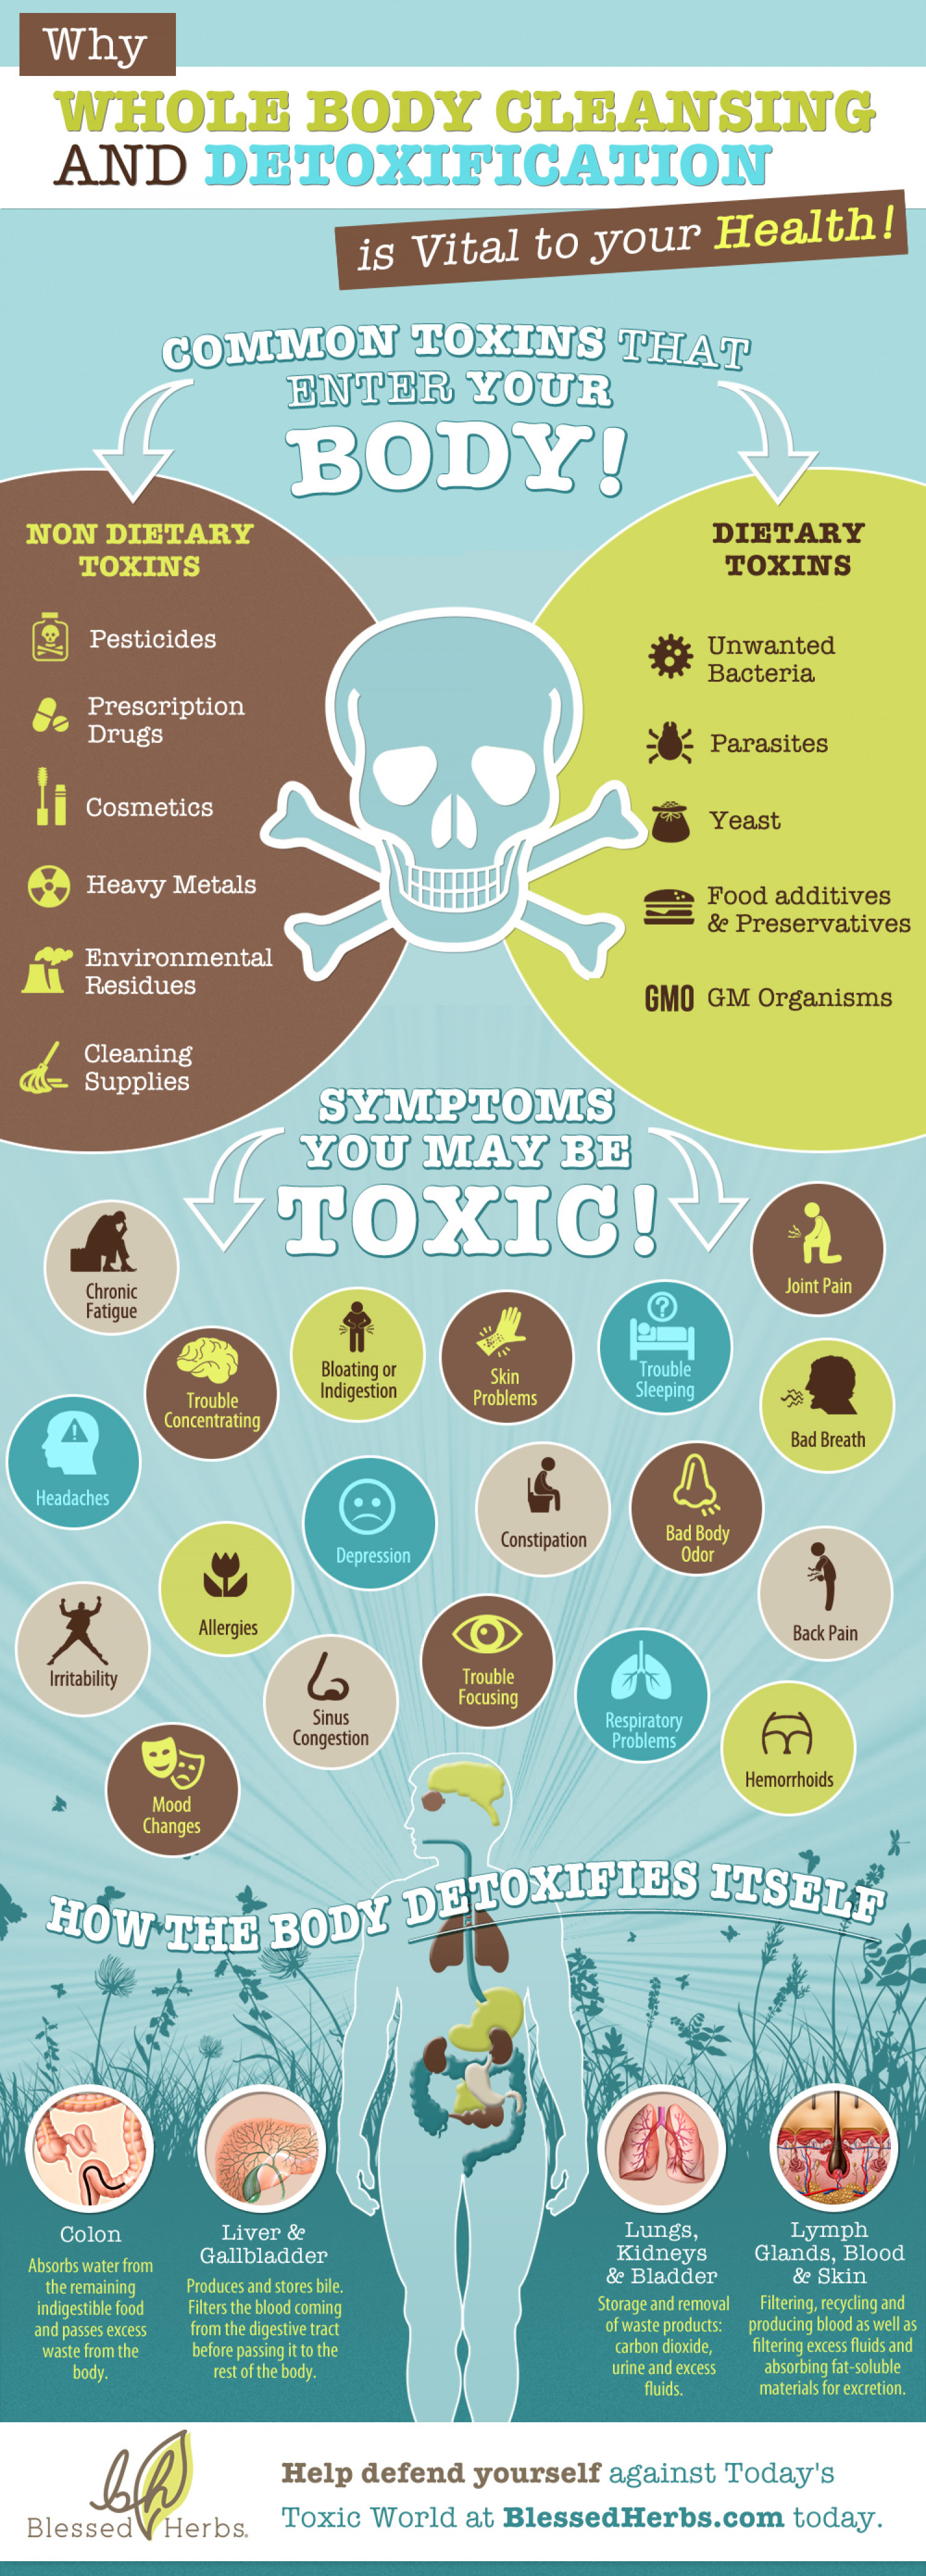 Why Whole Body Cleansing and Detoxification is Vital to Your Health! Infographic